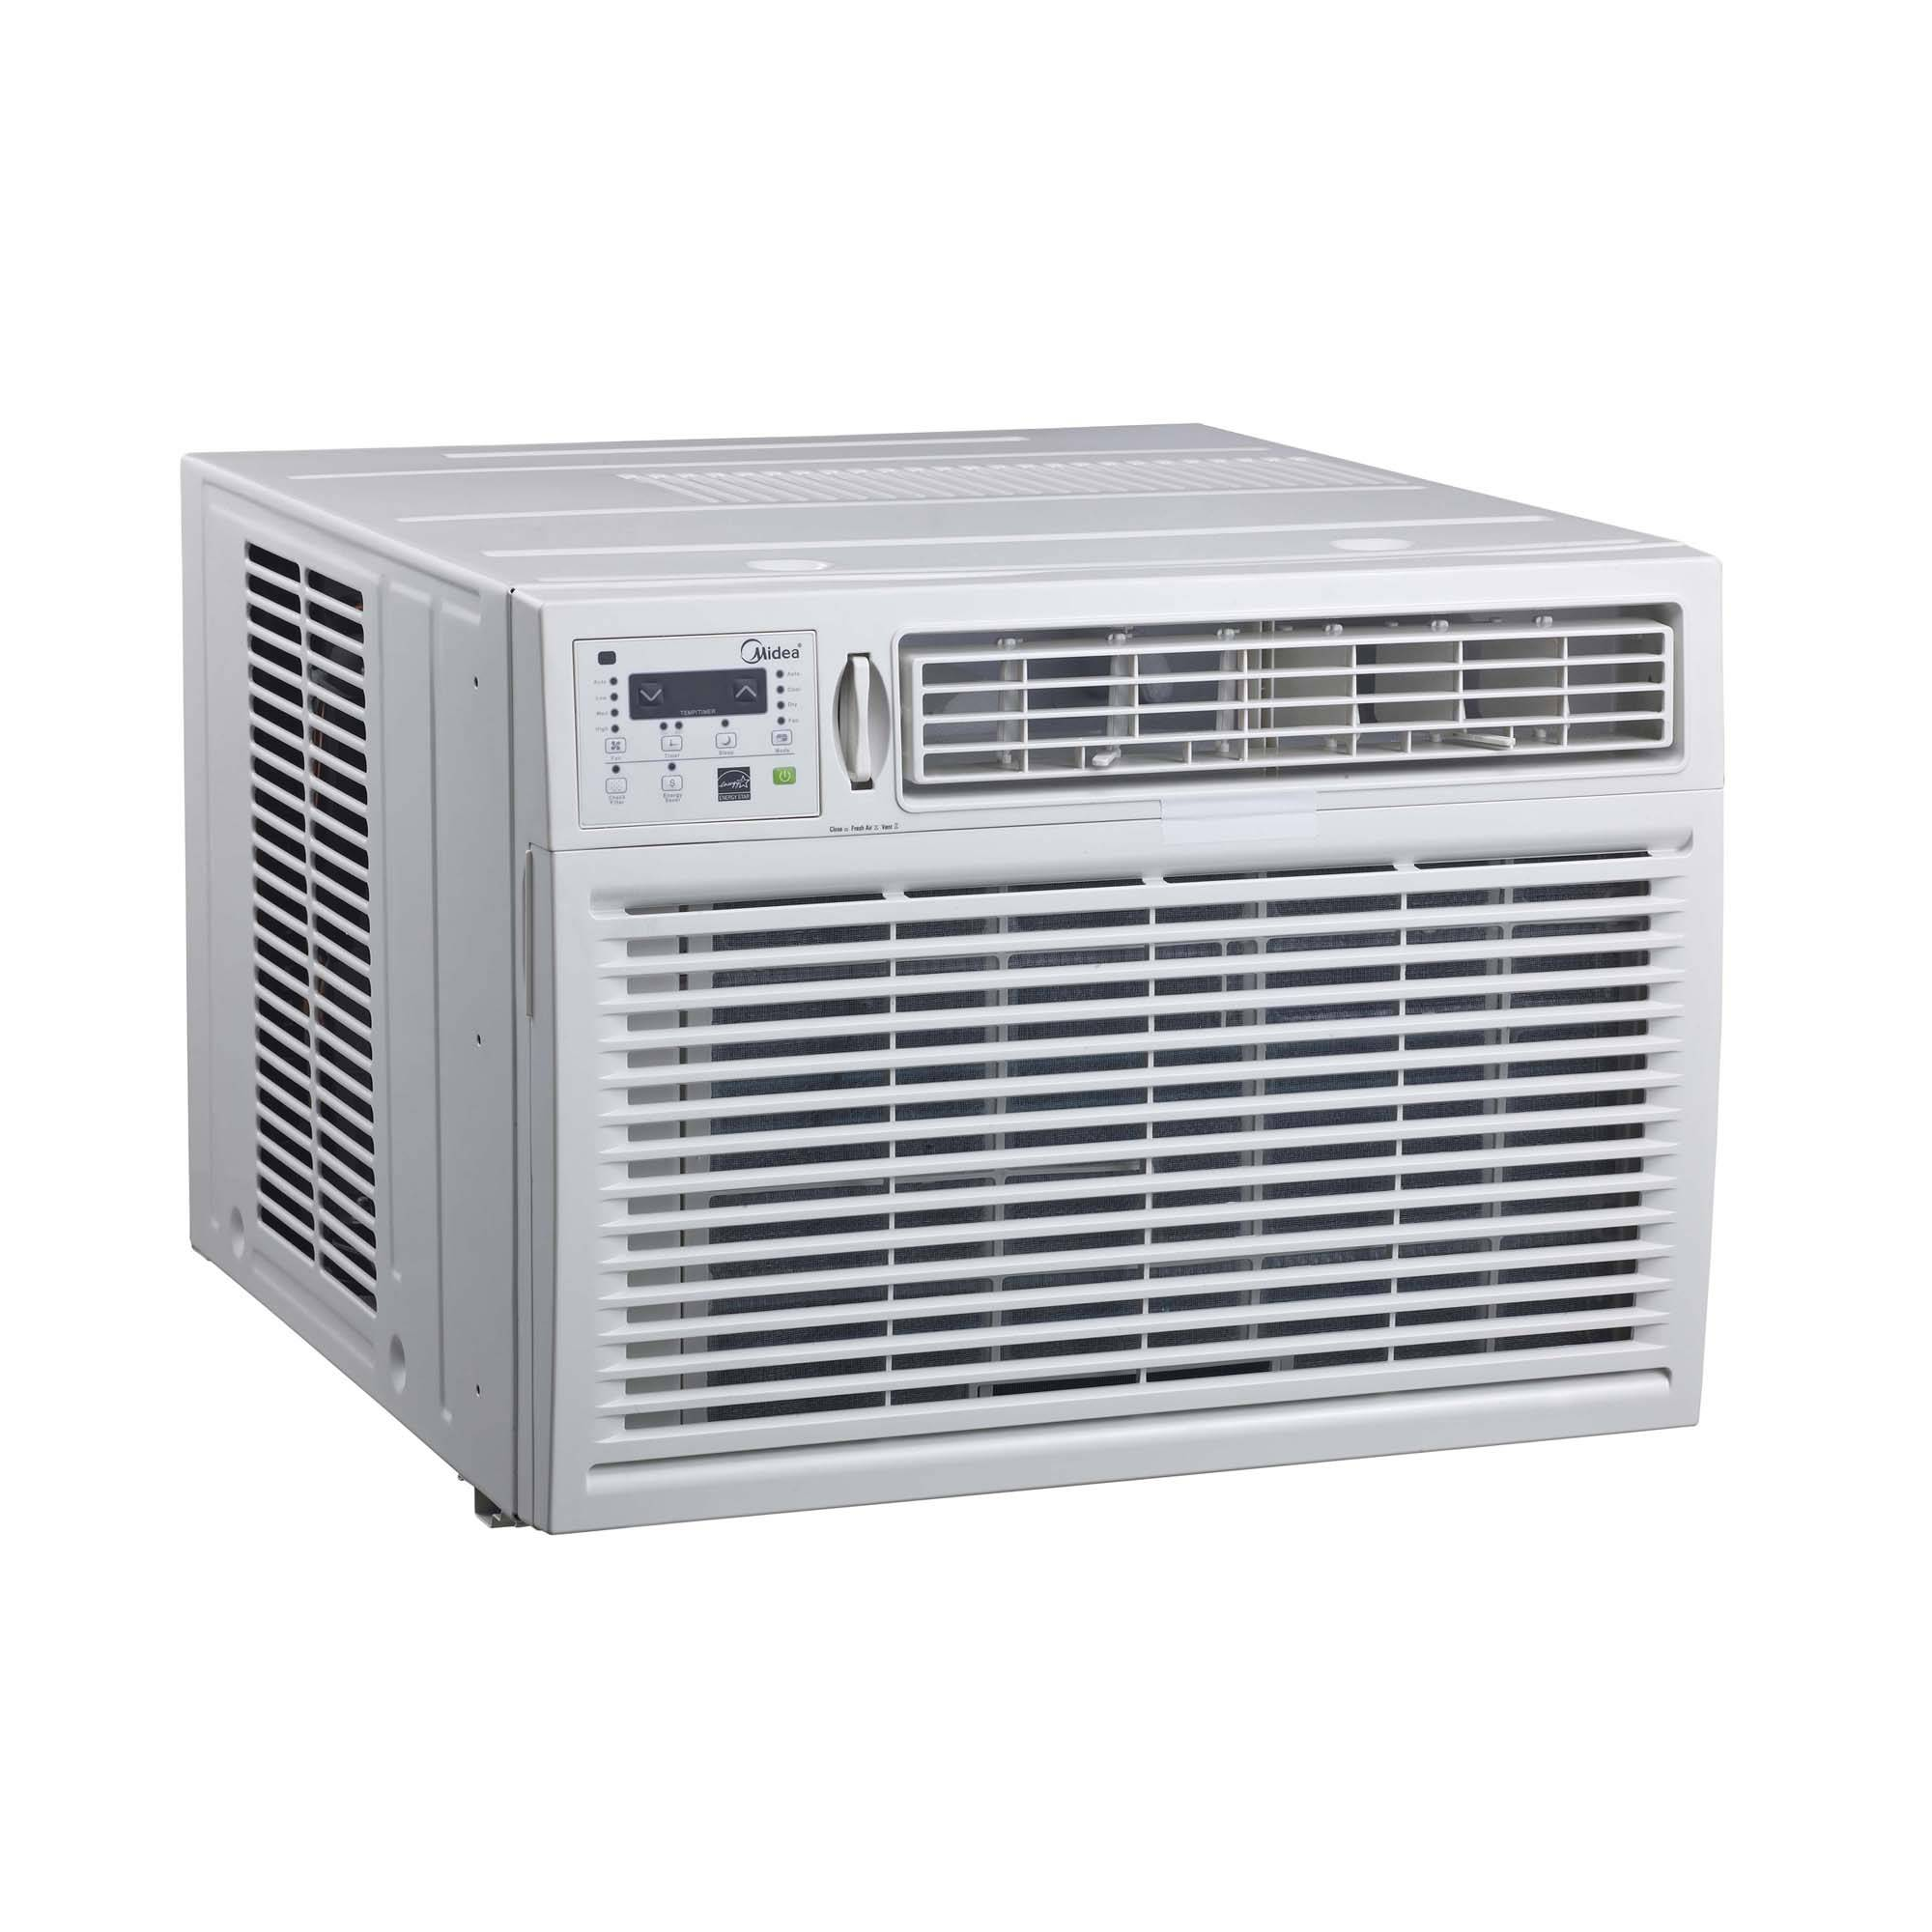 #2E3139 Impecca 8 000 Btu/h Window Air Conditioner Buckeyebride.com Highly Rated 9879 15000 Btu Wall Air Conditioner wallpapers with 2000x2000 px on helpvideos.info - Air Conditioners, Air Coolers and more